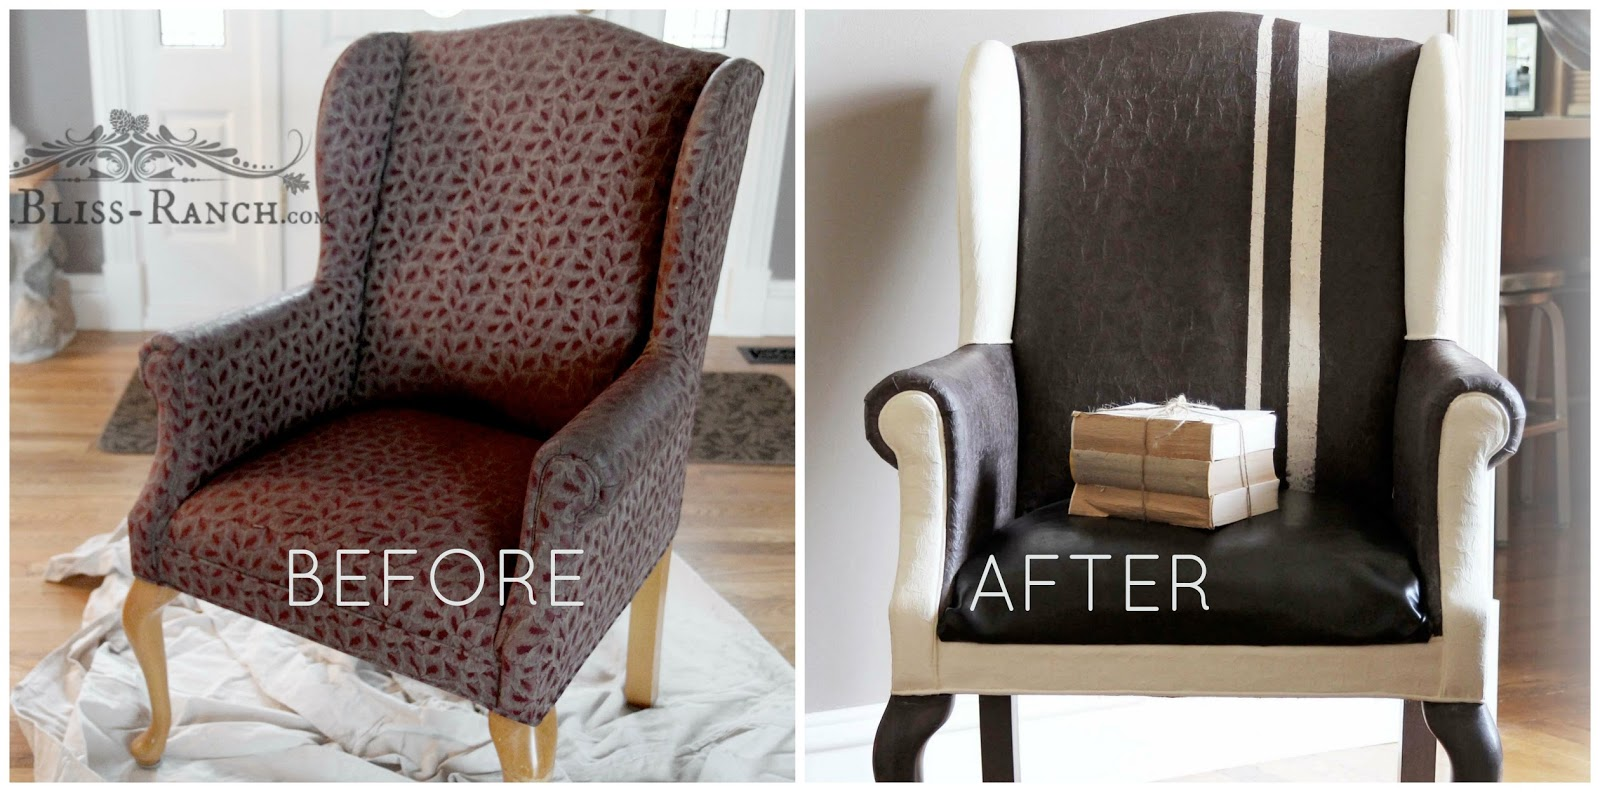 Before & After Painting Fabric With Chalk Paint, Bliss-Ranch.com